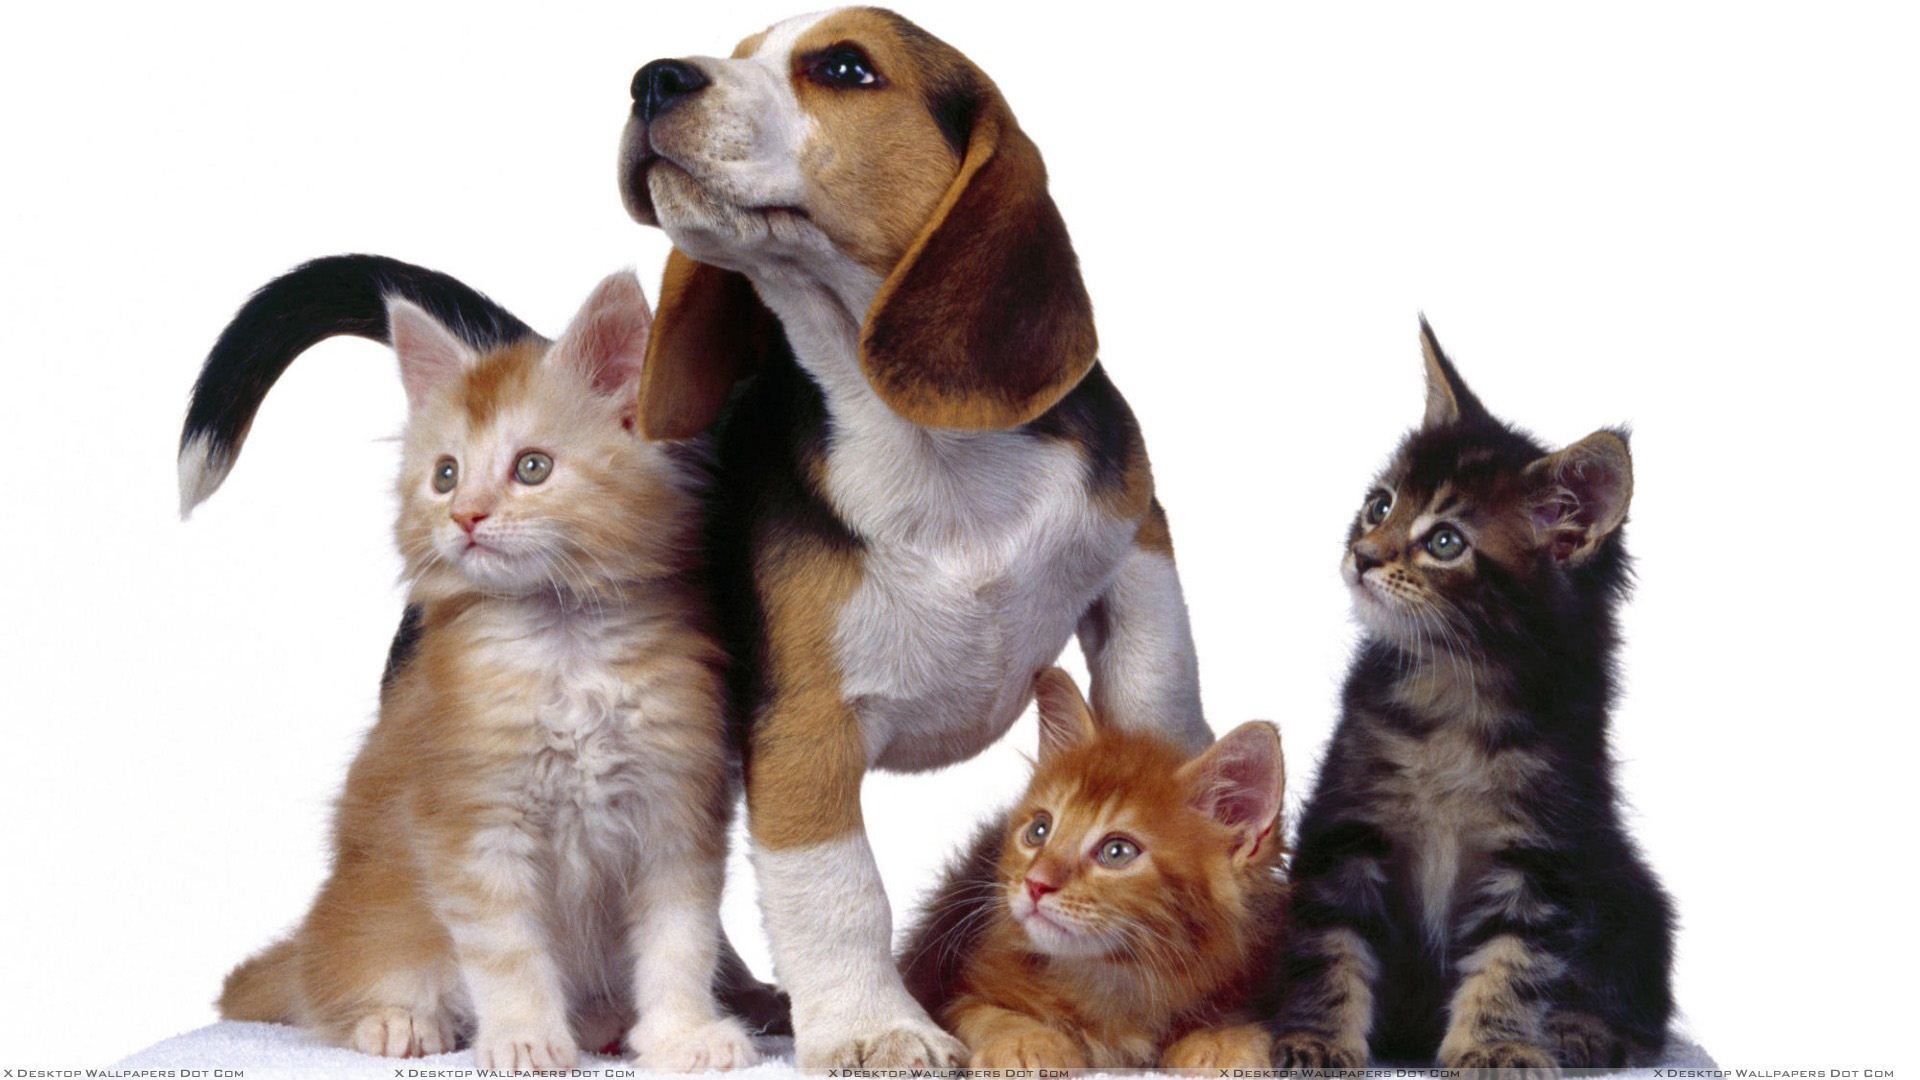 3 Cats With Dog On White Background Wallpaper 1920x1080